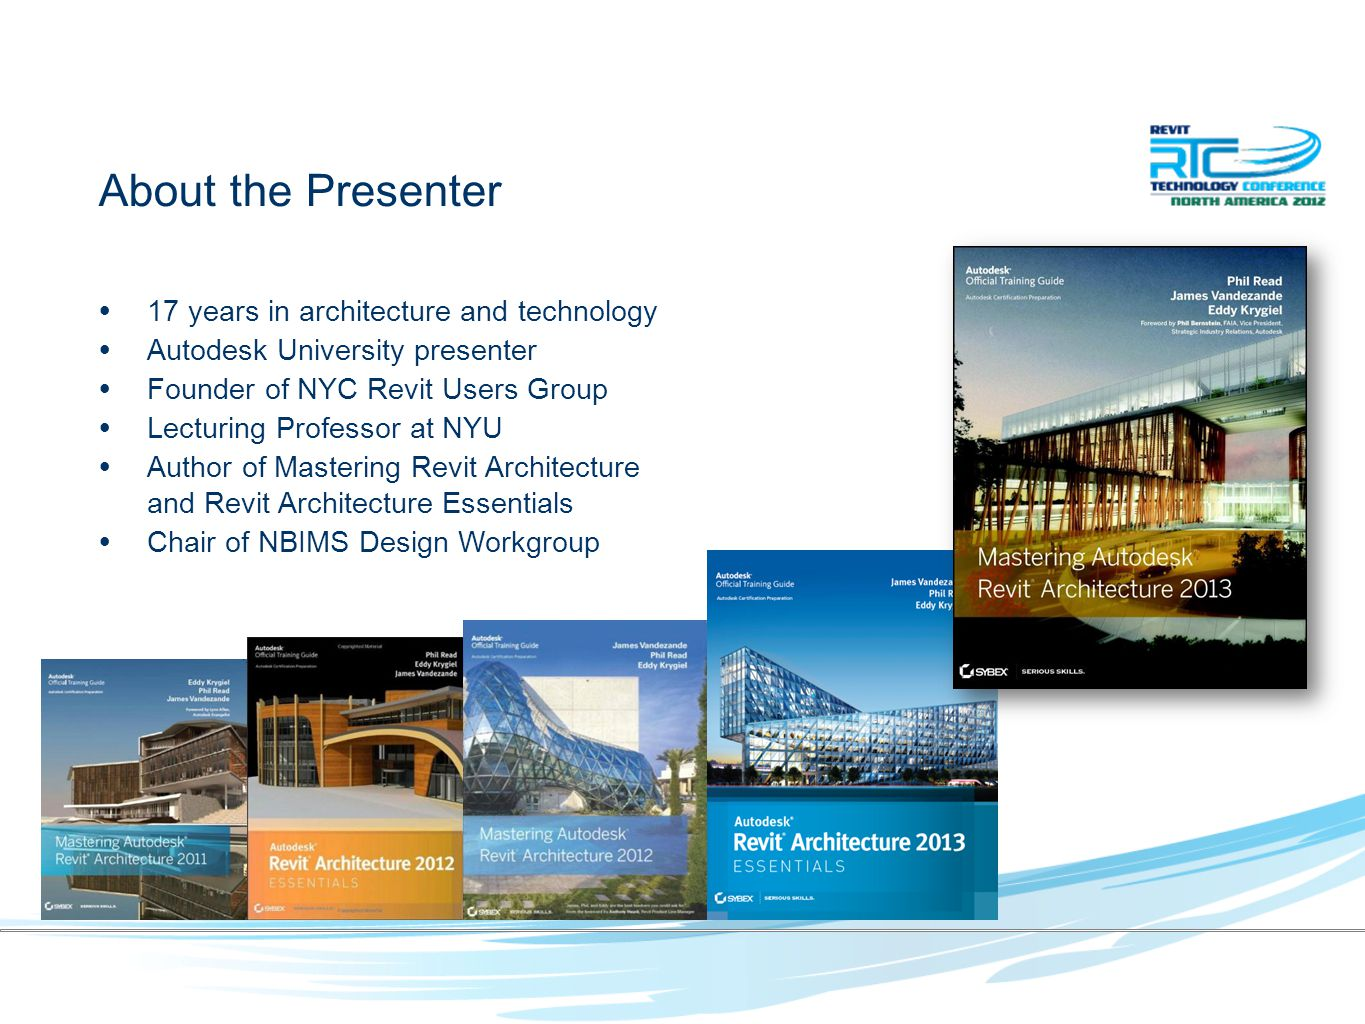 About the Presenter 17 years in architecture and technology Autodesk University presenter Founder of NYC Revit Users Group Lecturing Professor at NYU Author of Mastering Revit Architecture and Revit Architecture Essentials Chair of NBIMS Design Workgroup